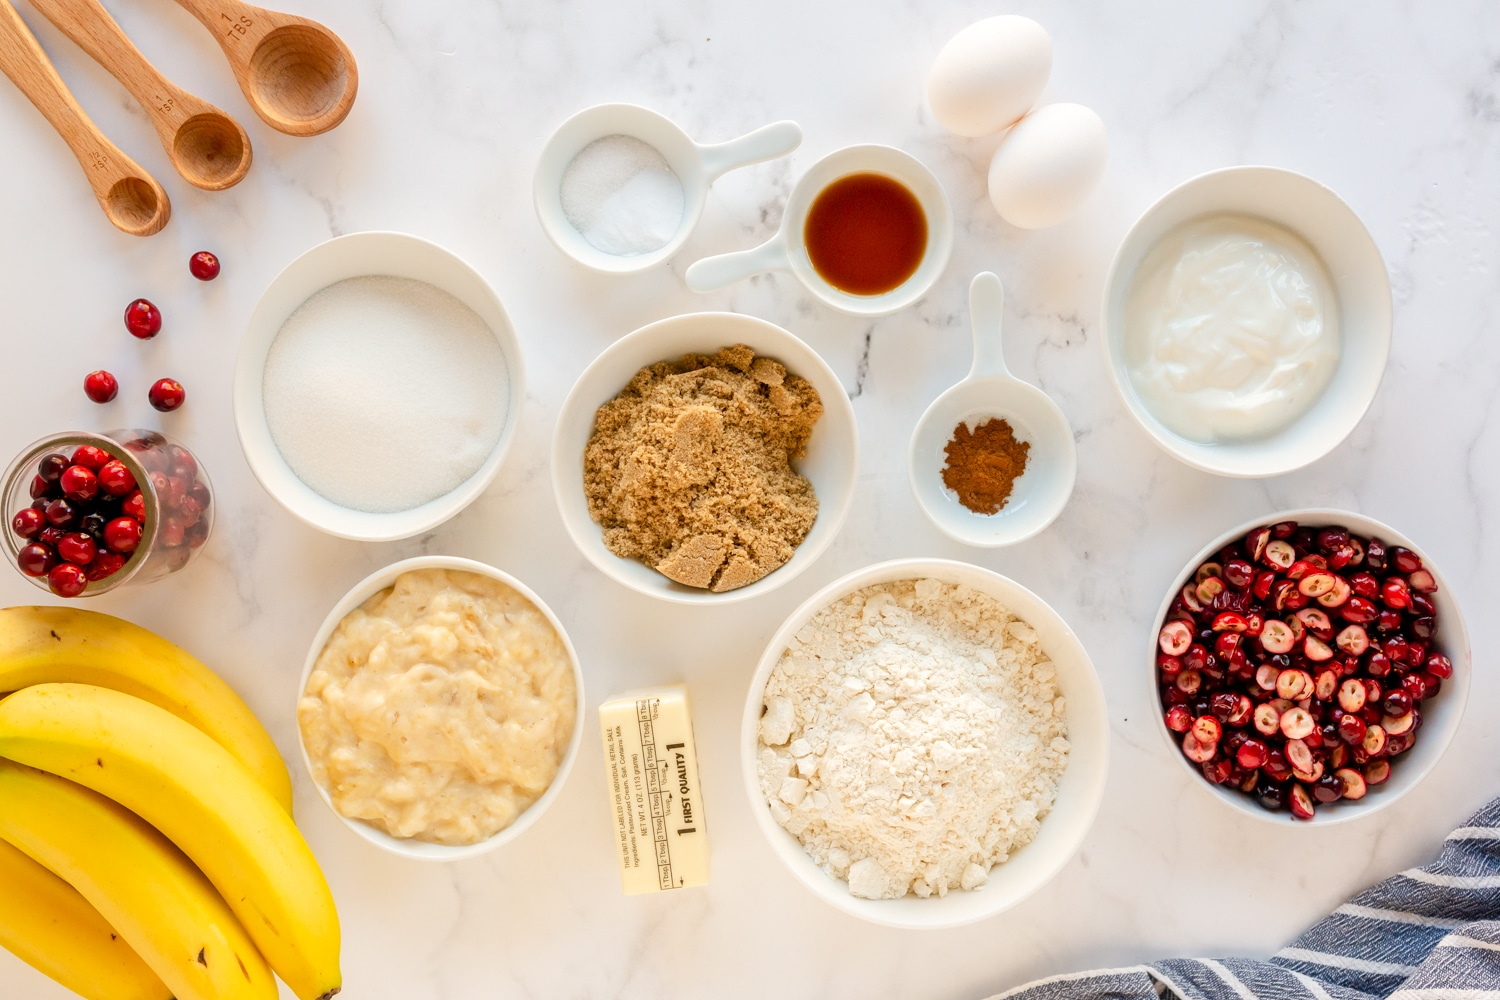 ingredients for cranberry banana bread